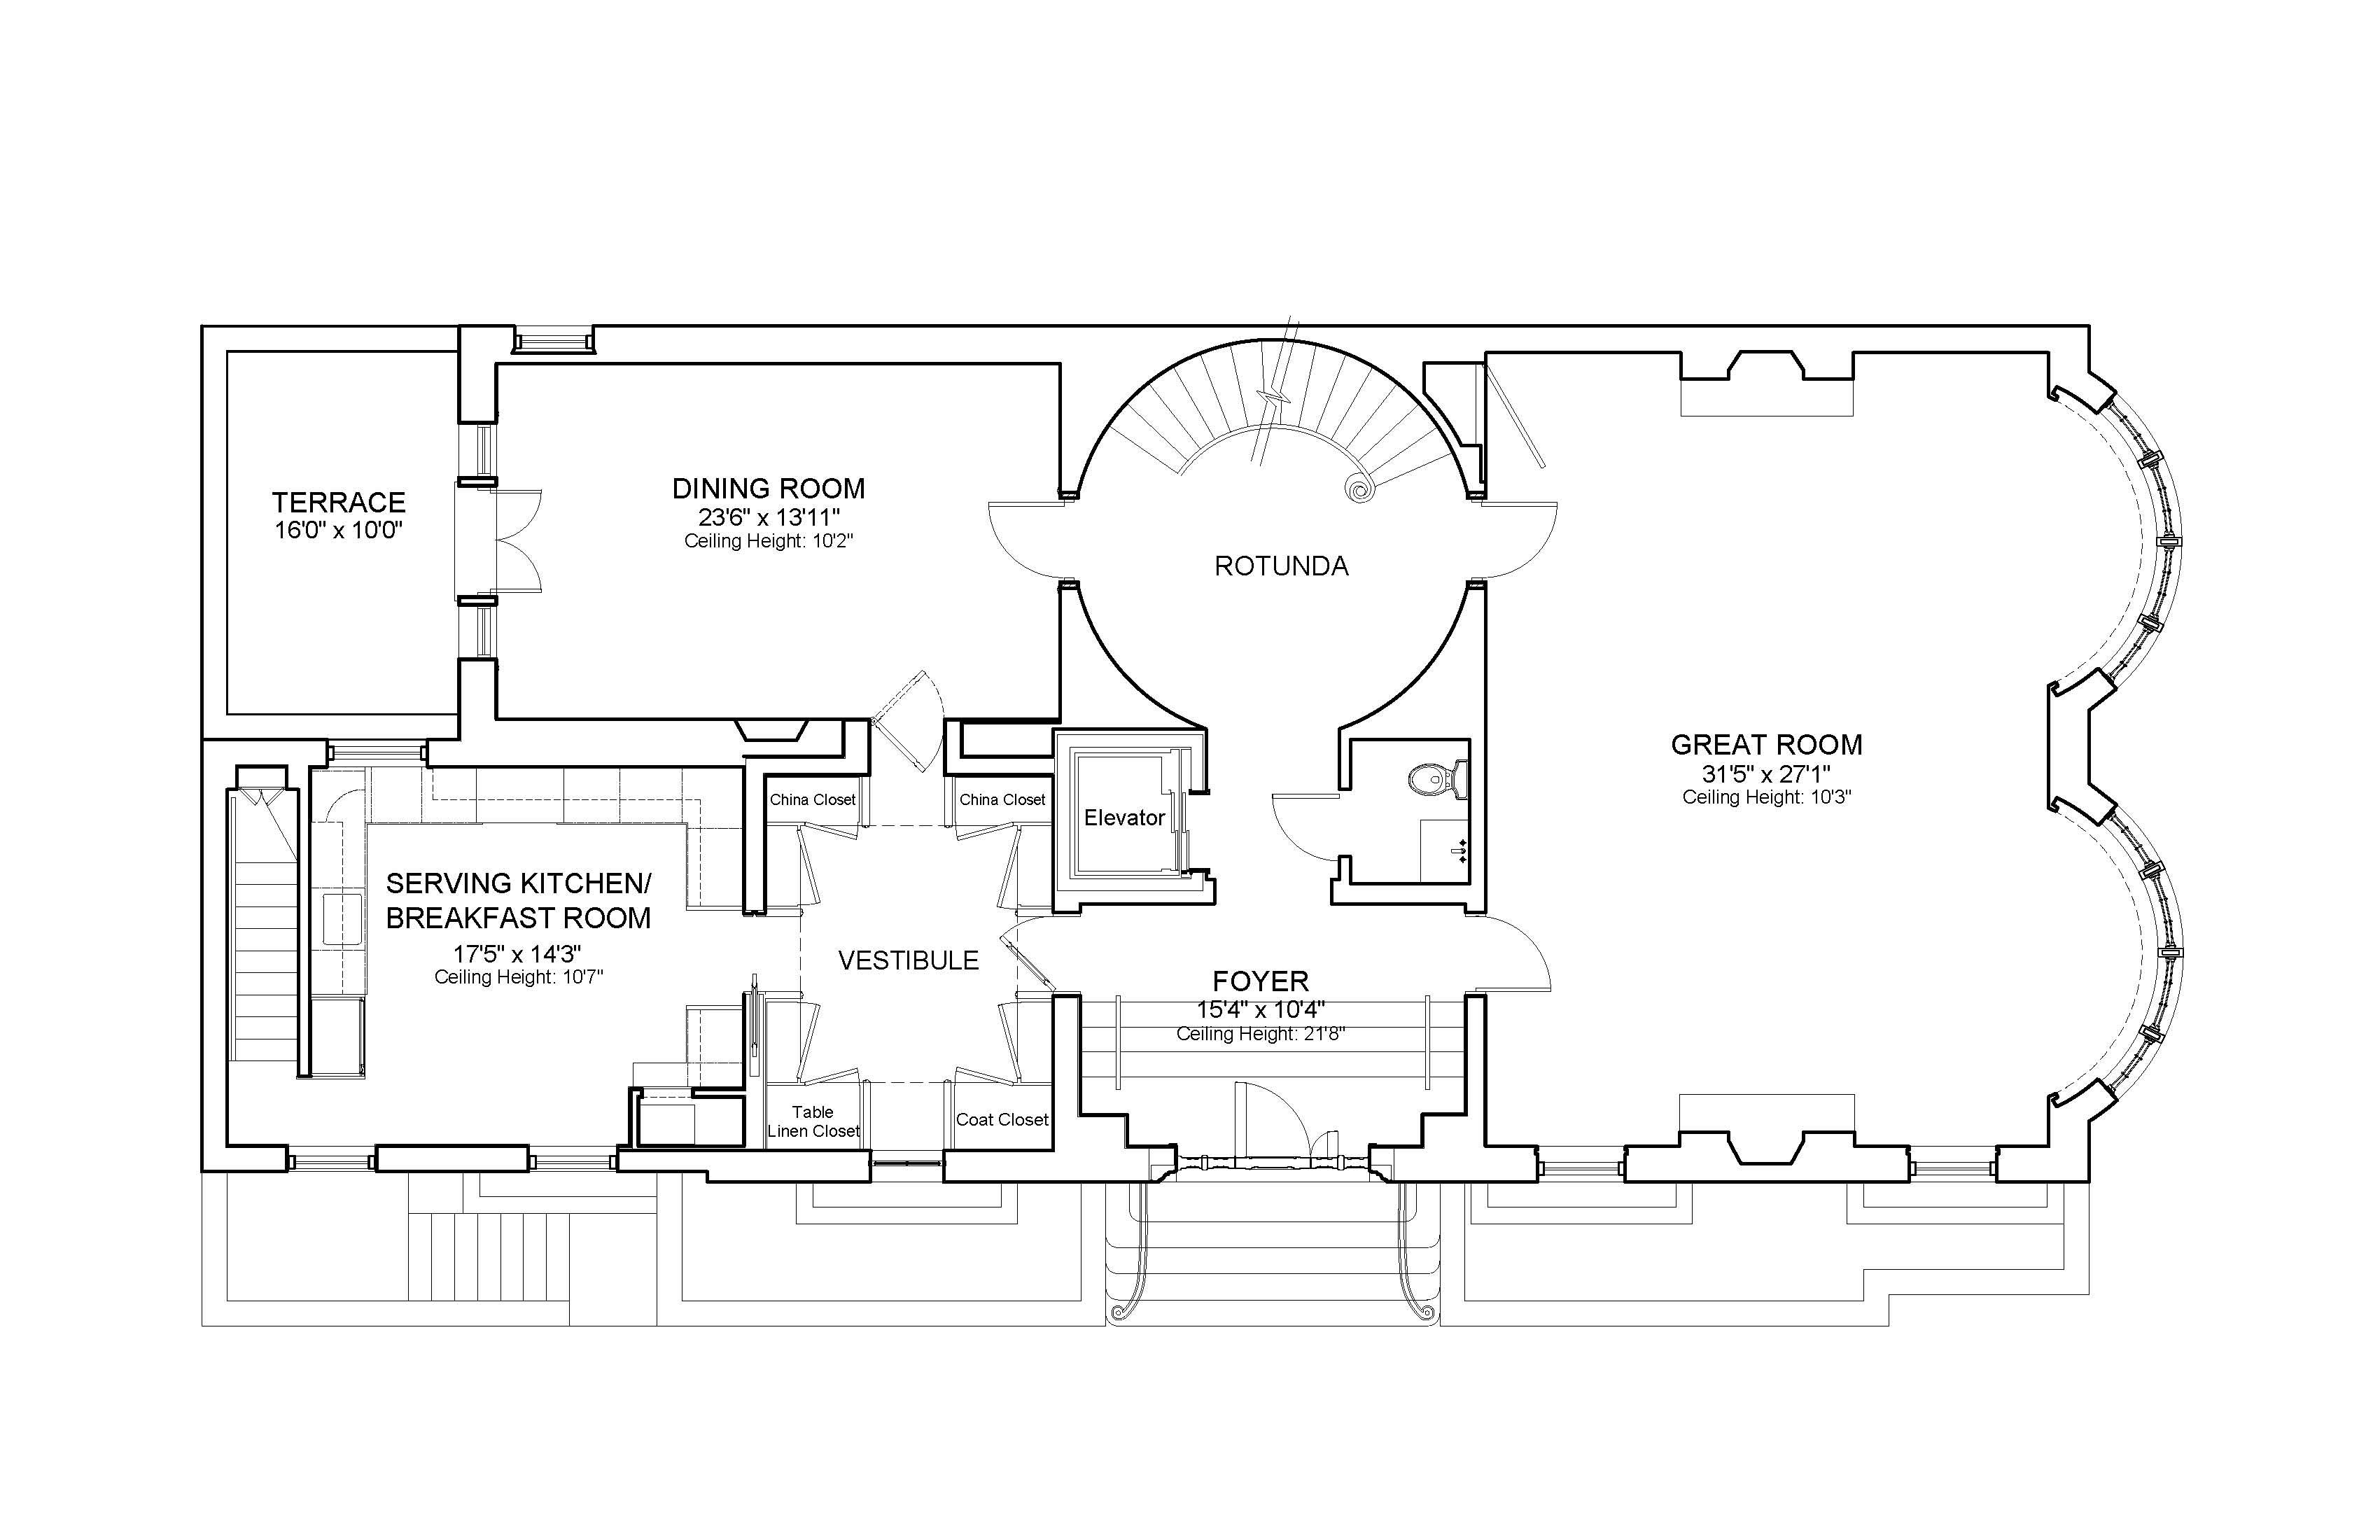 Corcoran 7 Sutton Square Sutton Area Real Estate Manhattan For Sale Homes Sutton Area Townhouse Carrie Chiang L Floor Plans Floor Plan Drawing Townhouse